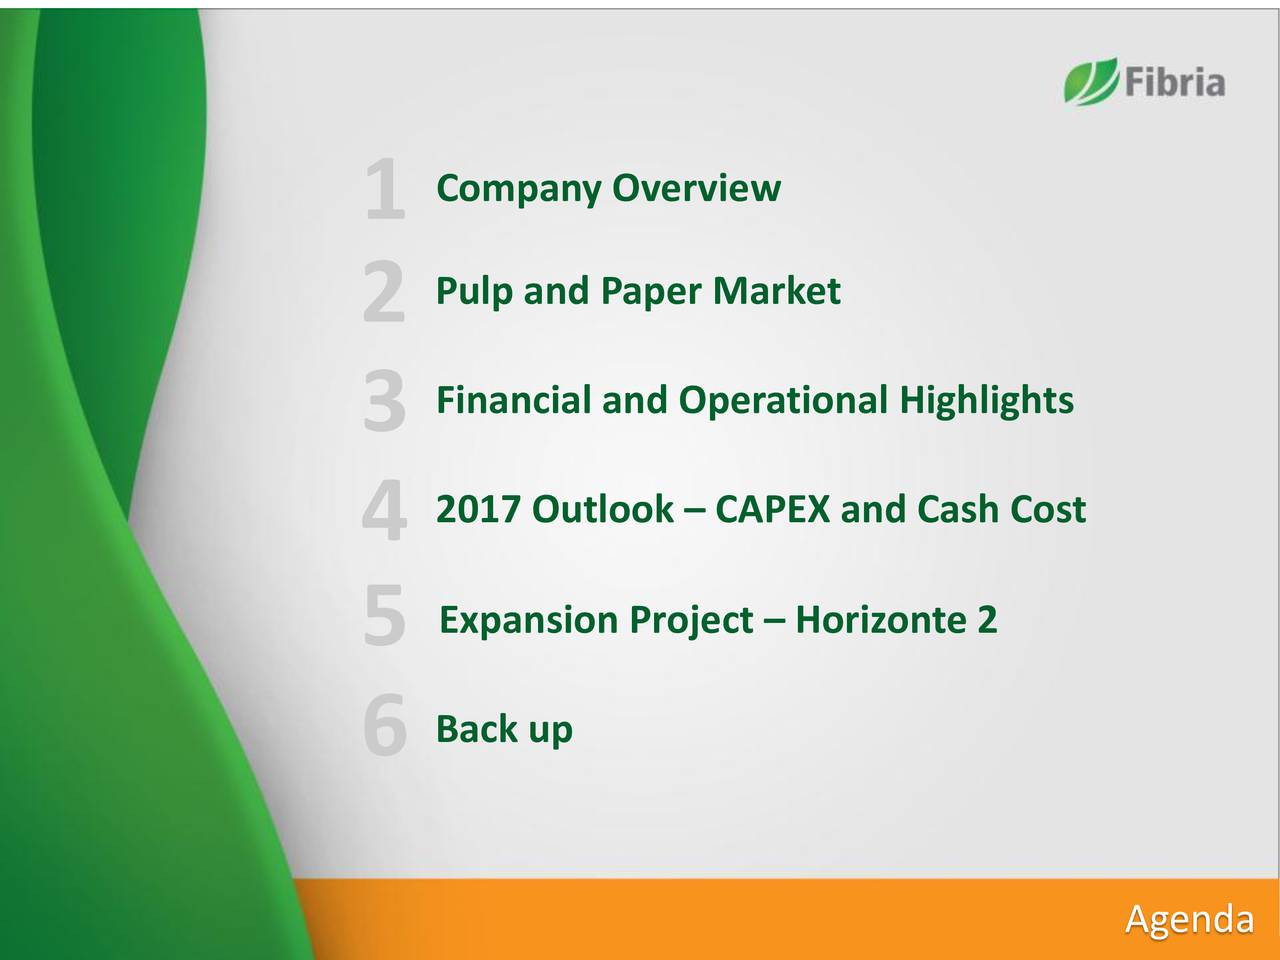 Pulp and Paper Market 2 3 Financial and Operational Highlights 4 2017 Outlook  CAPEX and Cash Cost 5 Expansion Project  Horizonte 2 6 Back up